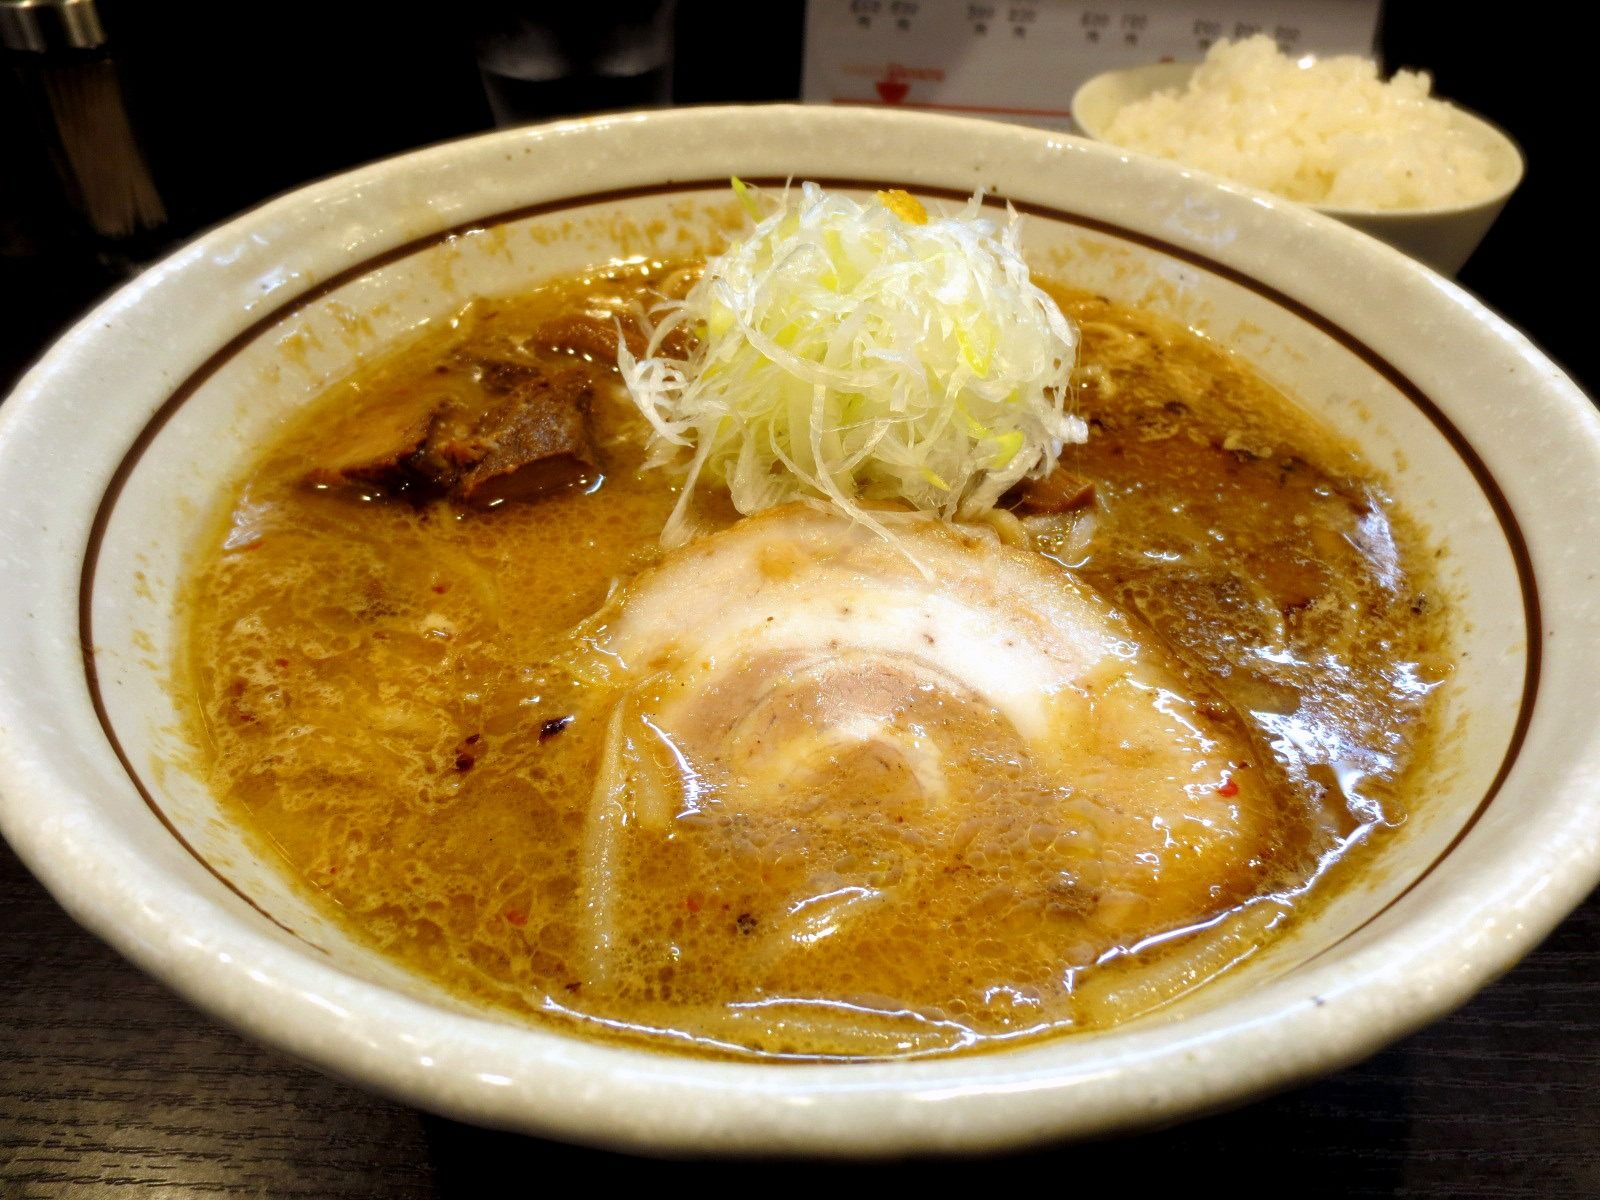 Miso Ramen 880 yen, White Rice (Small) 120 yen